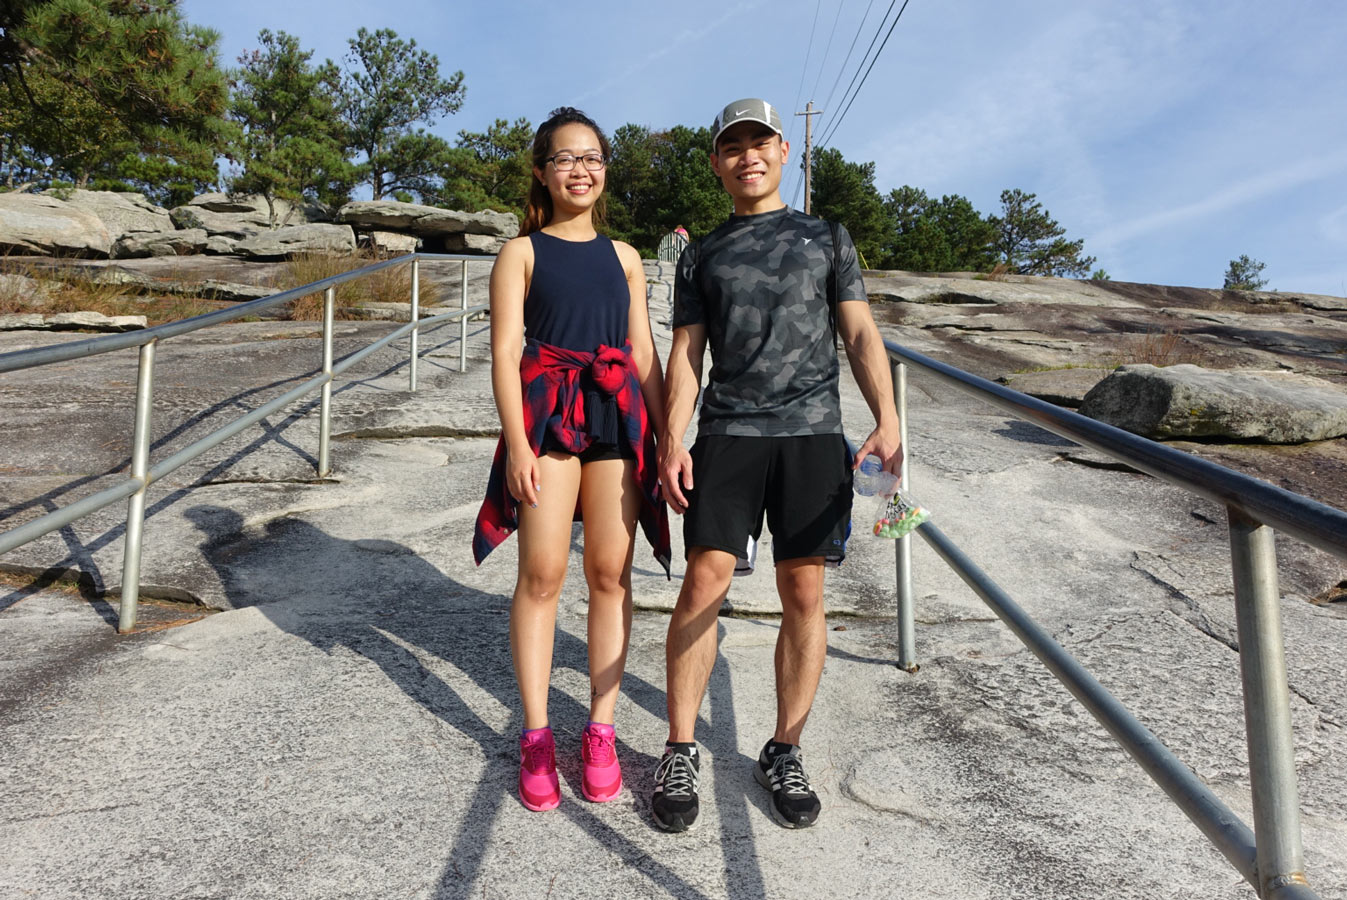 Thuy and Loc are originally from Vietnam